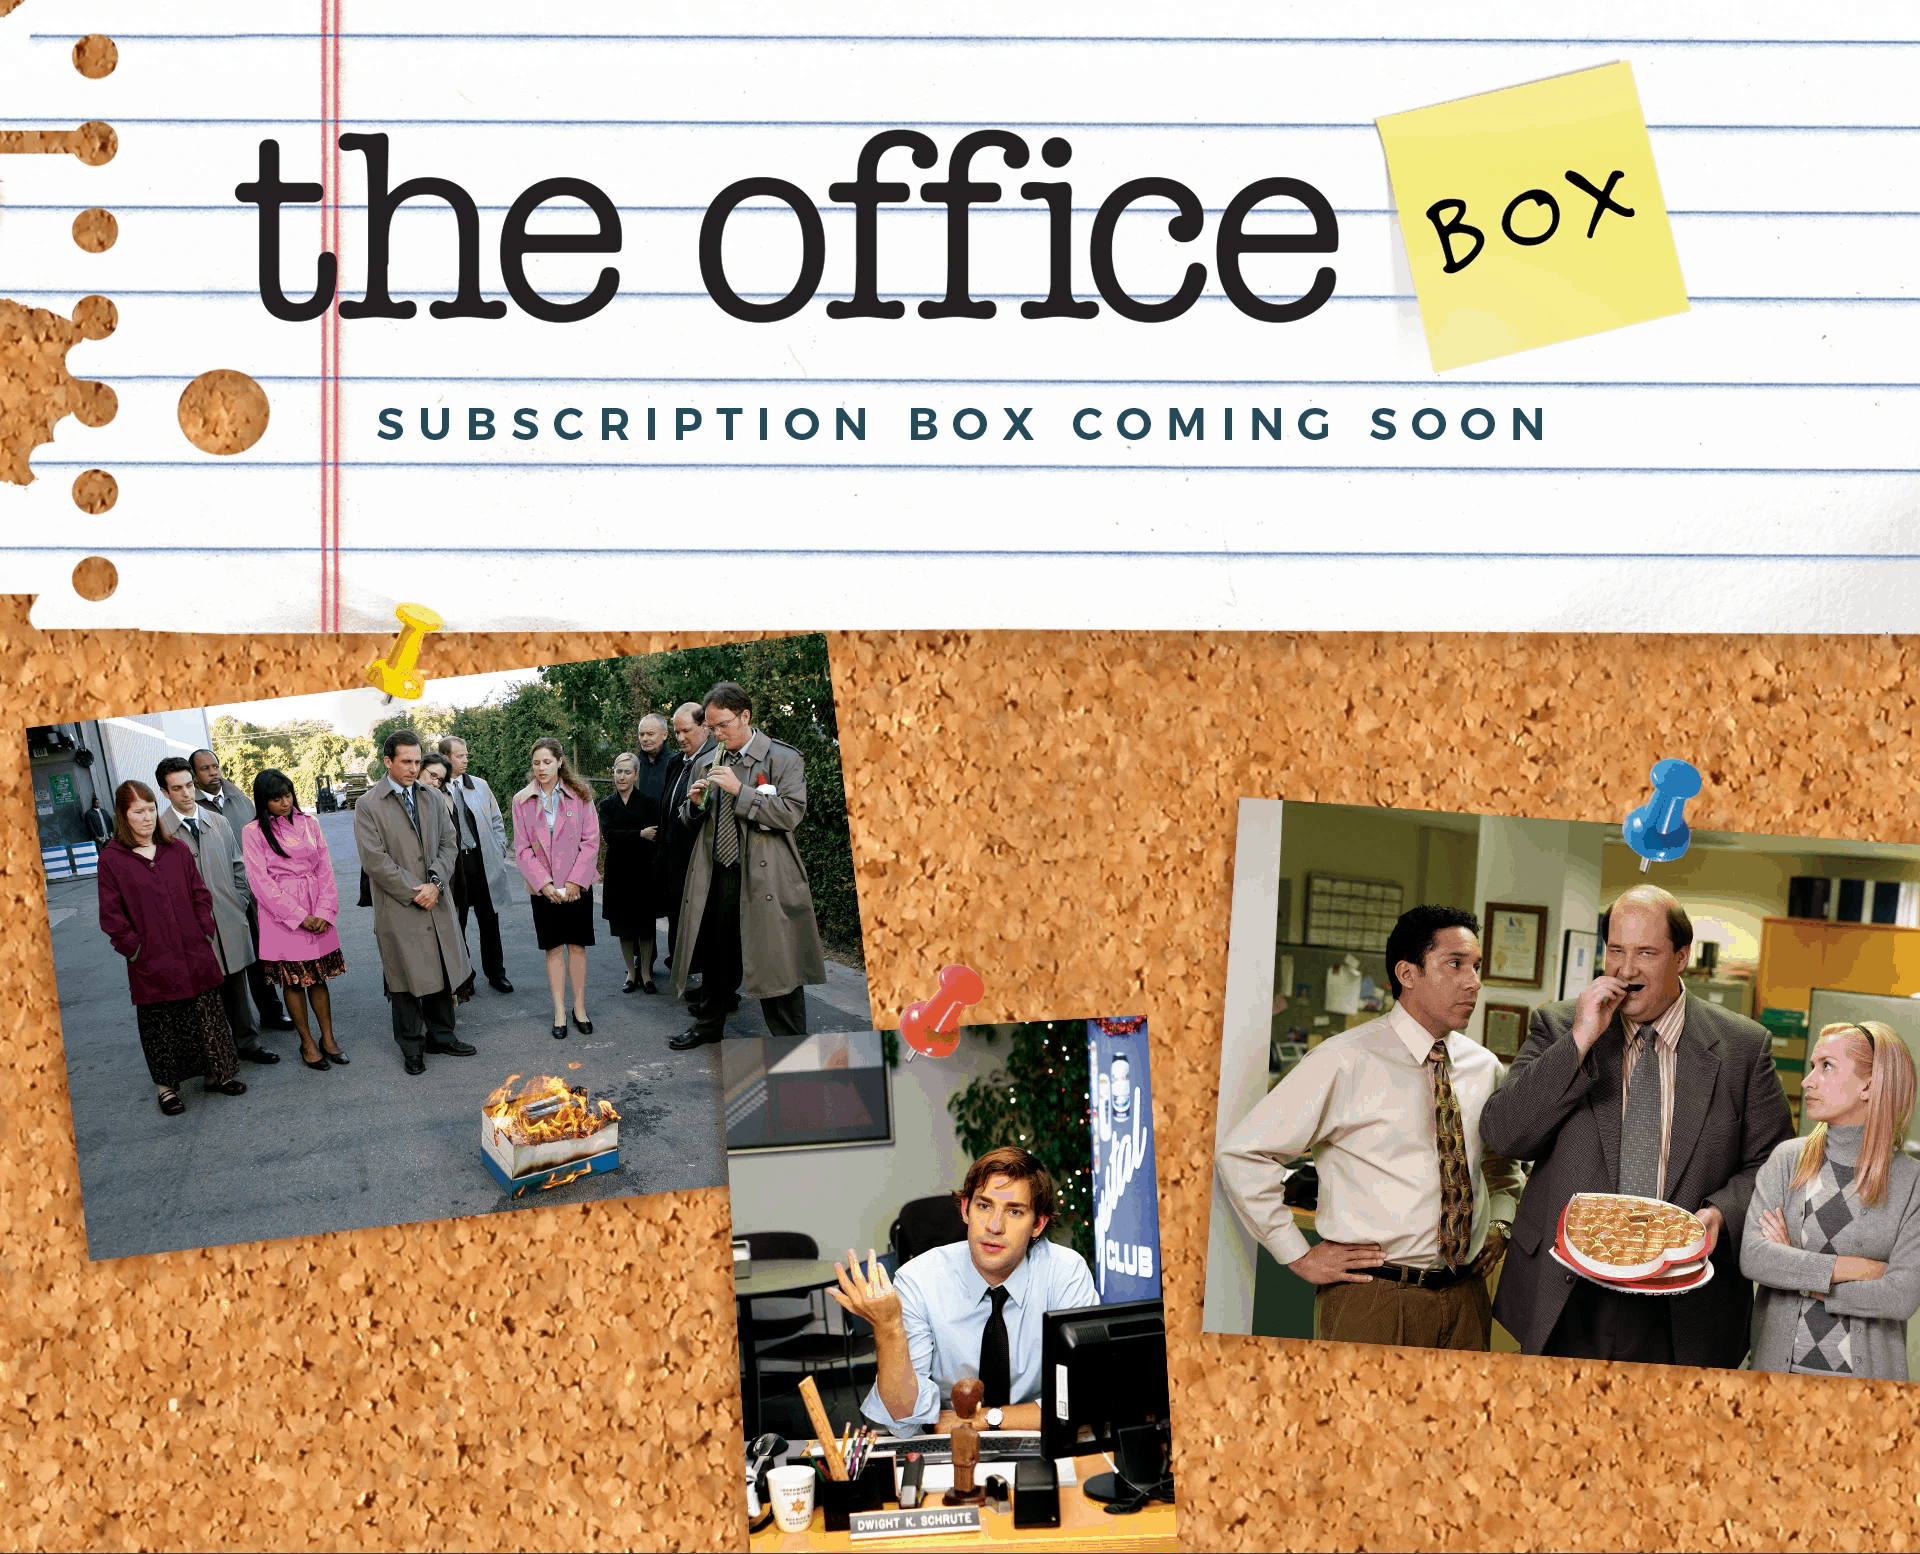 The Office Subscription Box Coming Soon!